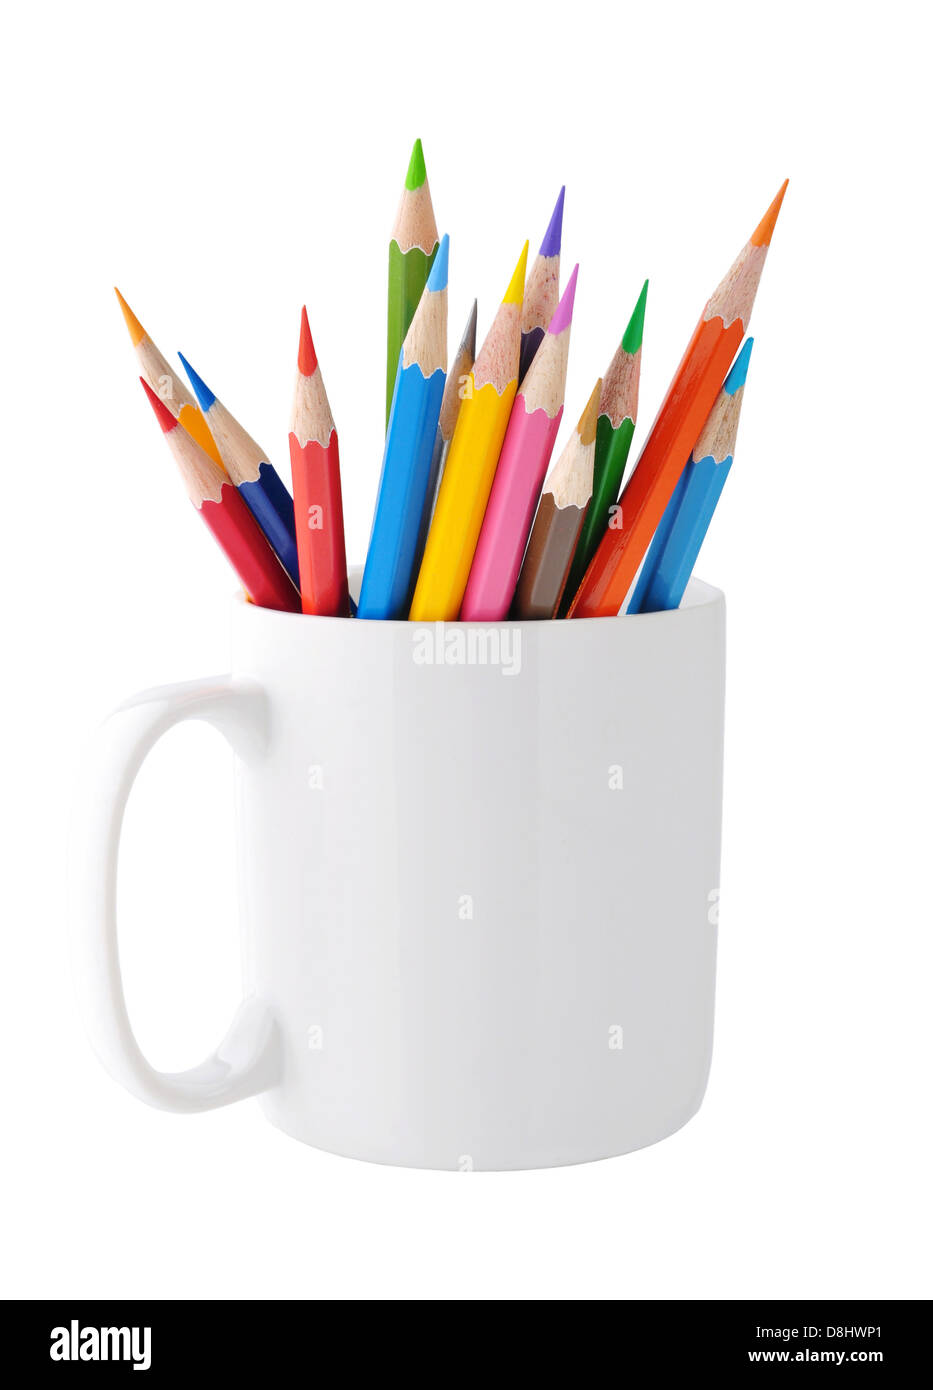 Color pencils with clipping path - Stock Image